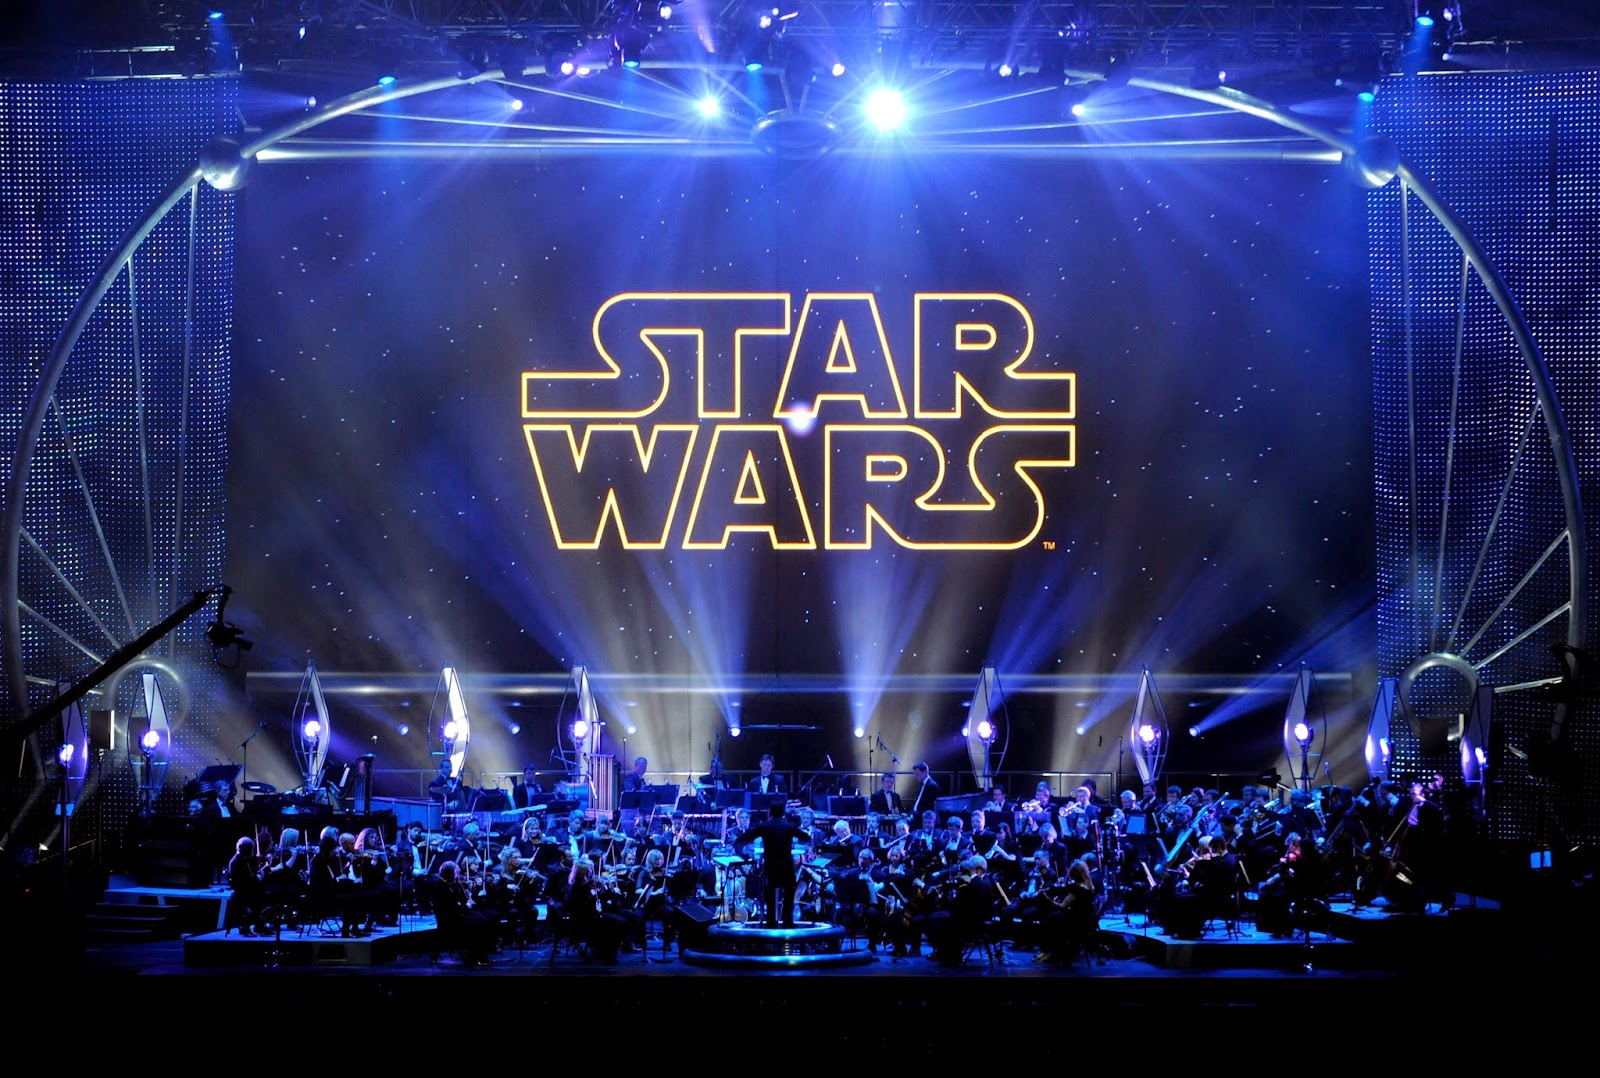 All Things about Star Wars Theme Music